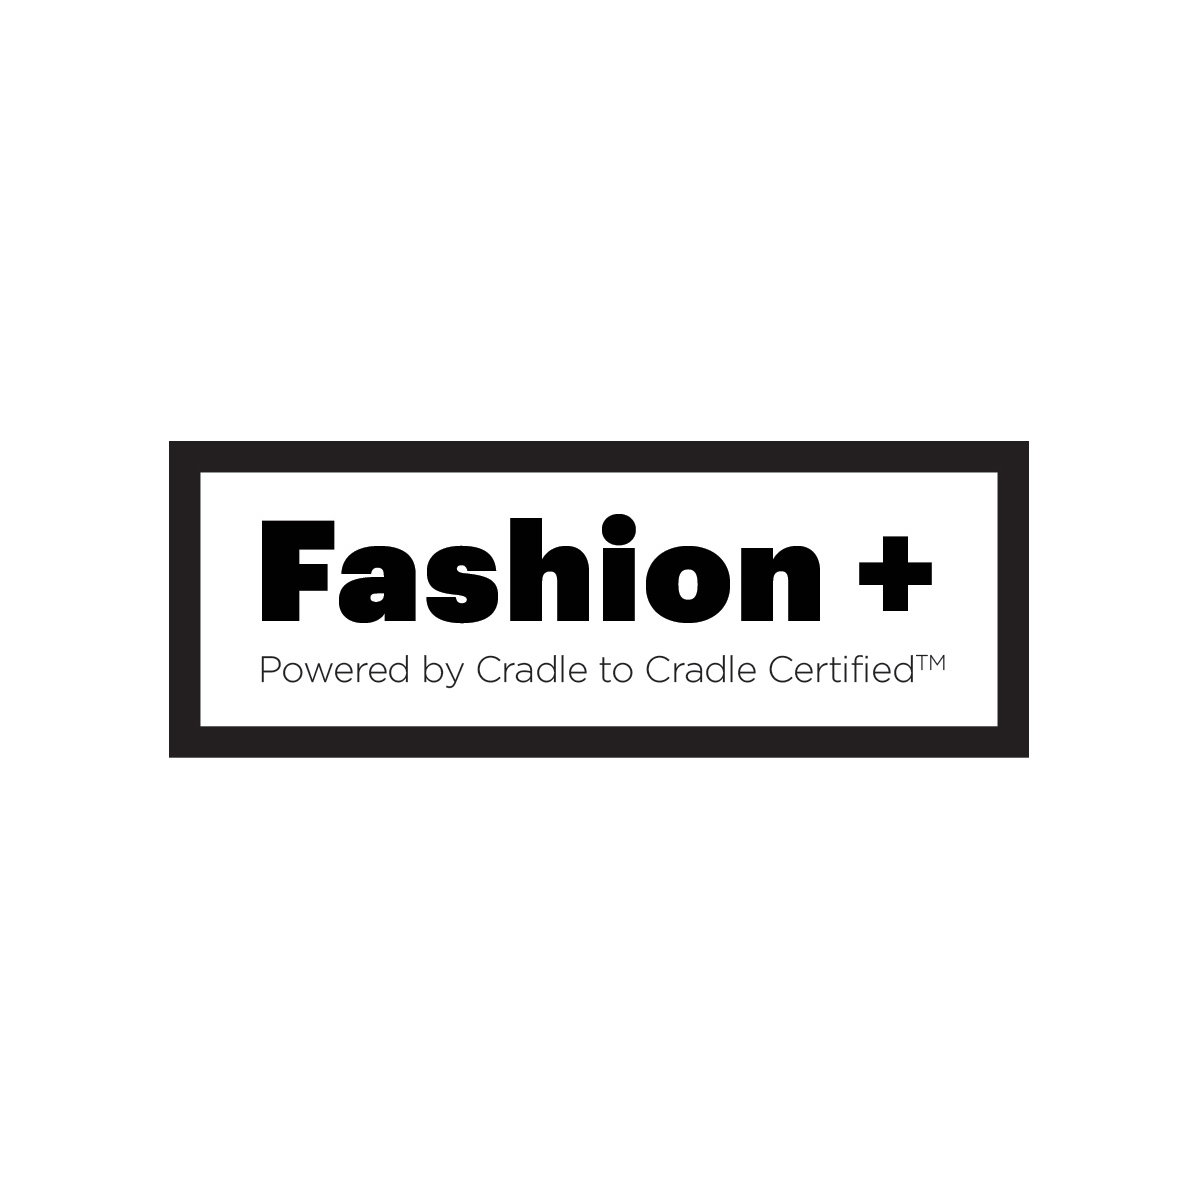 Five Fashion Companies Join Fashion Positive Plus